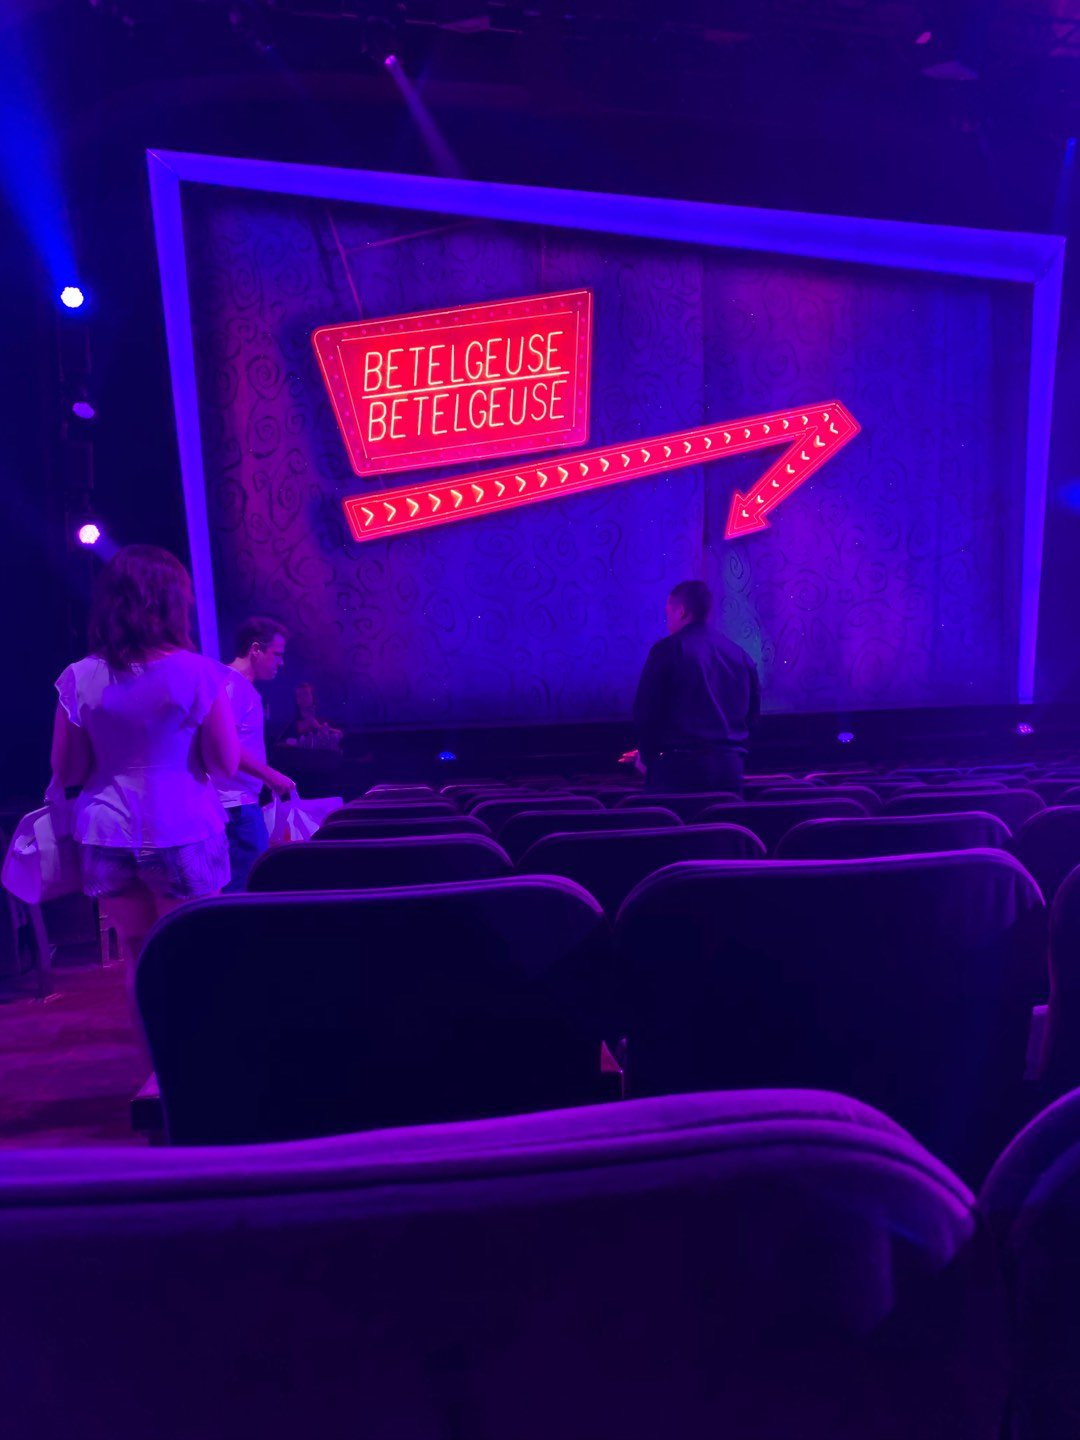 Winter Garden Theatre Section Orchestra C Row M Seat 118